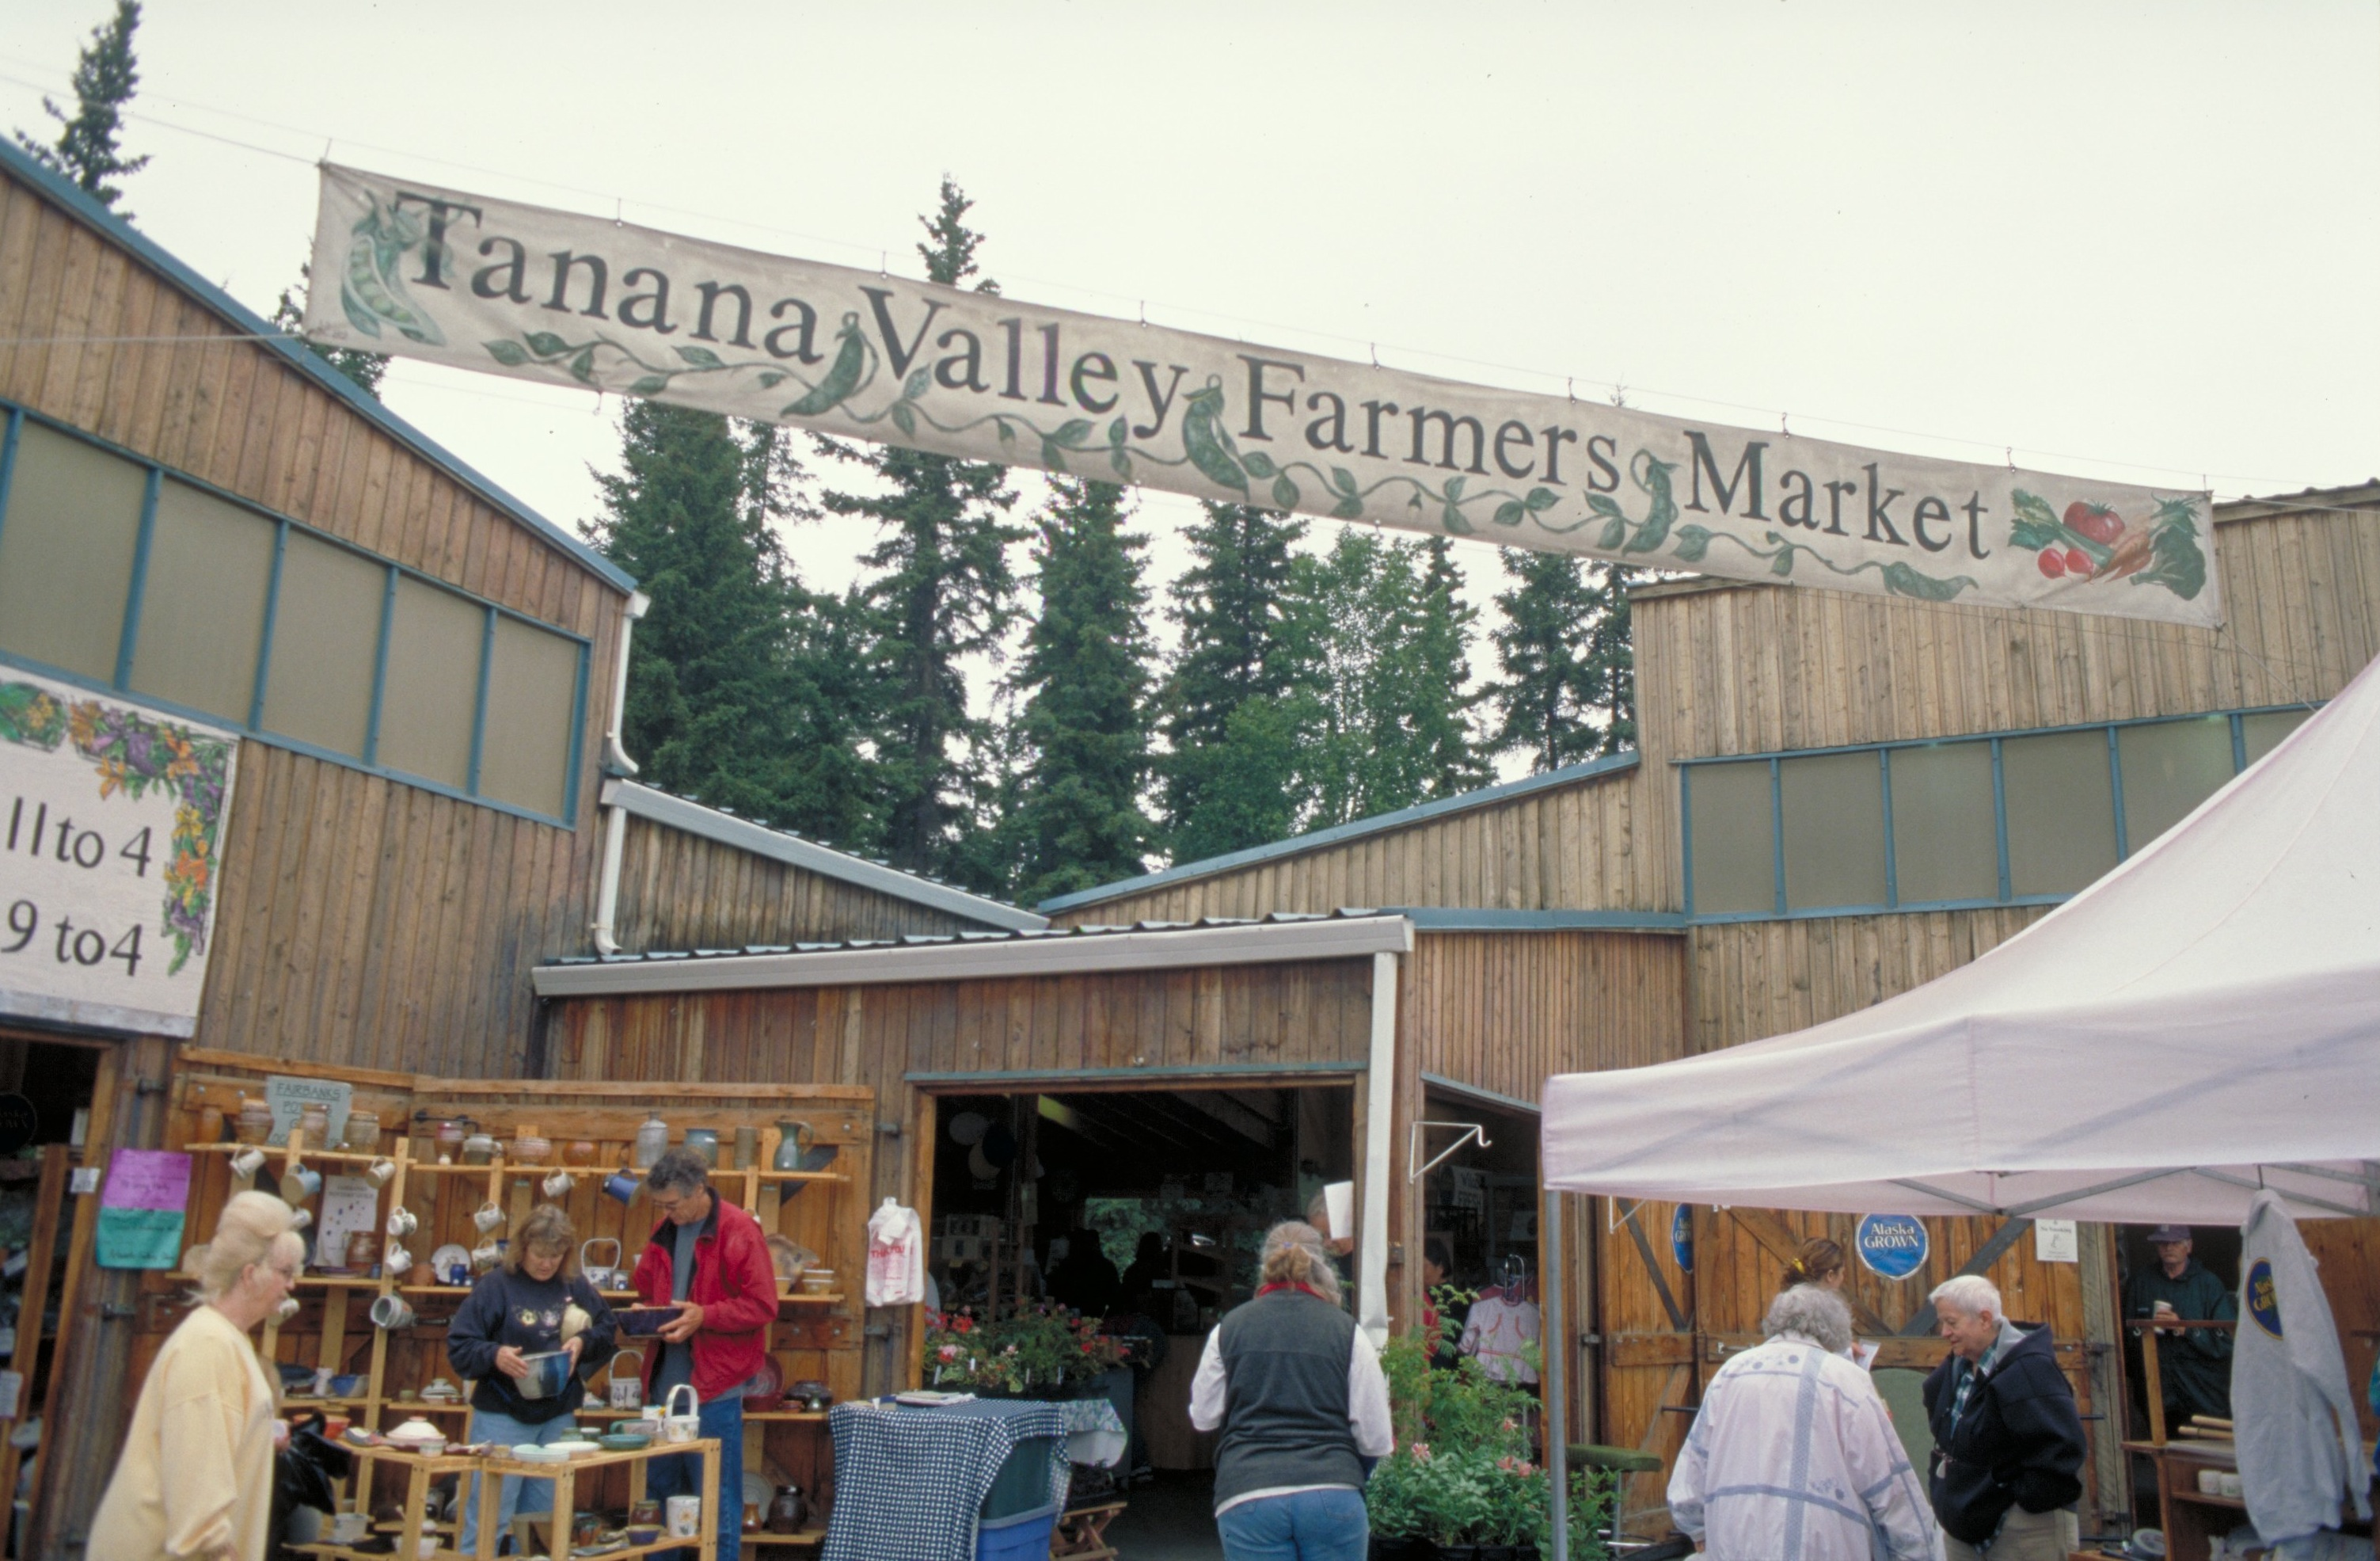 Tanana Valley Farmers Market hangs over tents and tables with local vendors